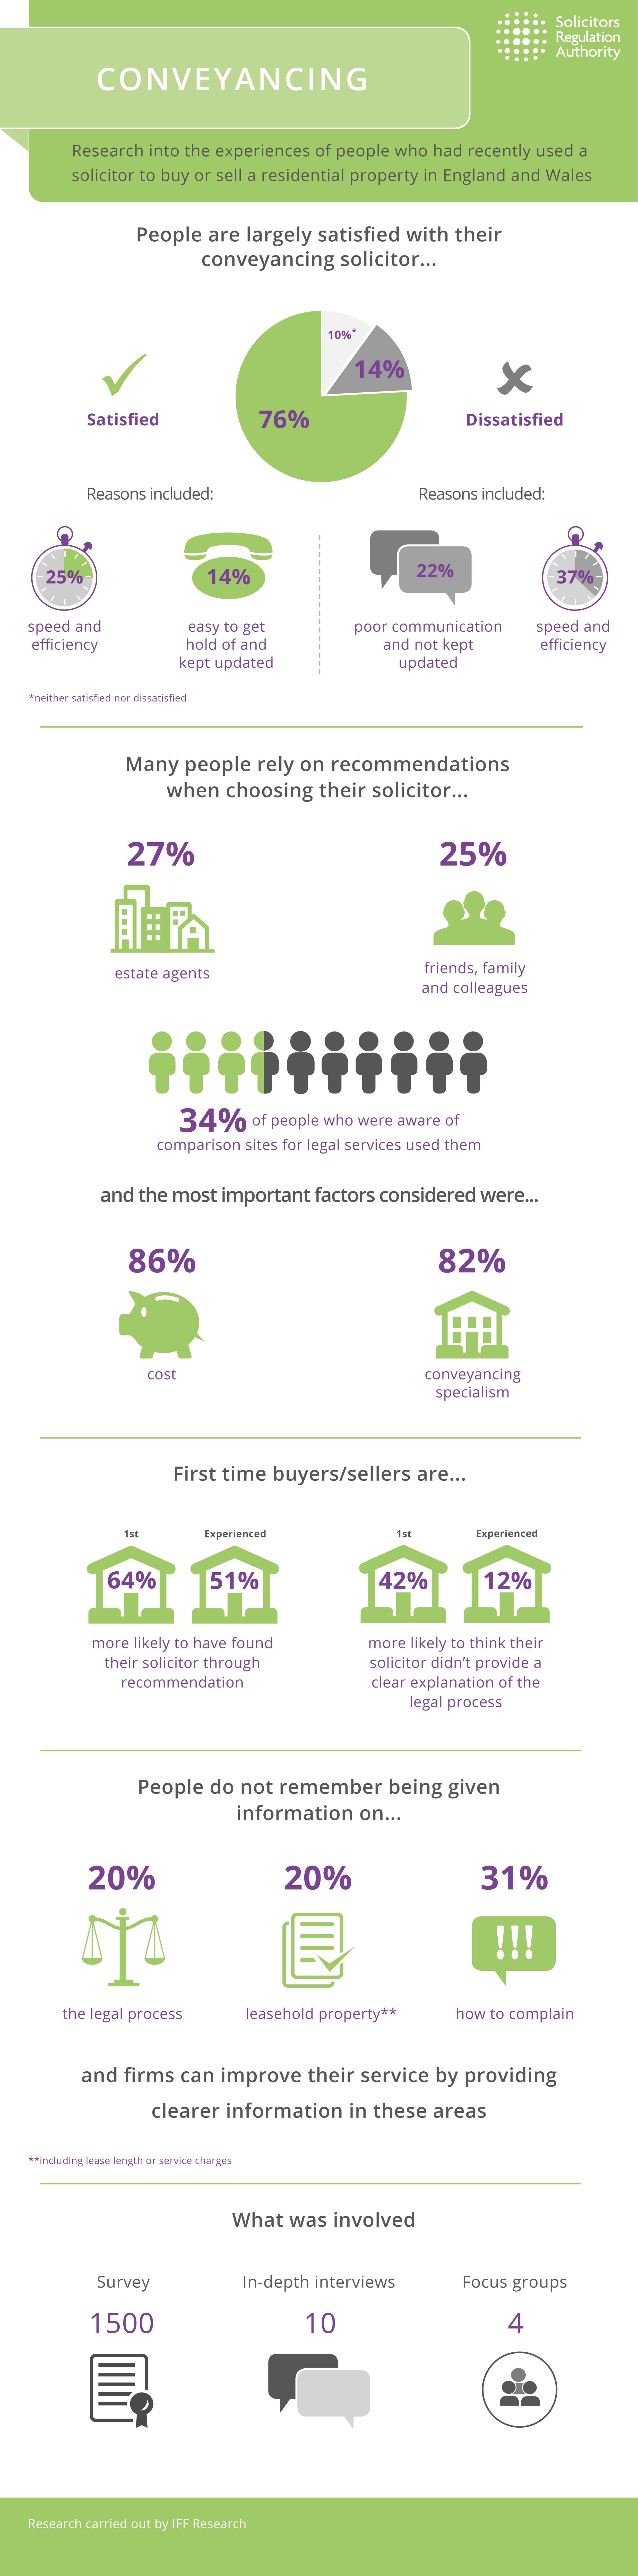 SRA | Understanding consumer experiences of conveyancing